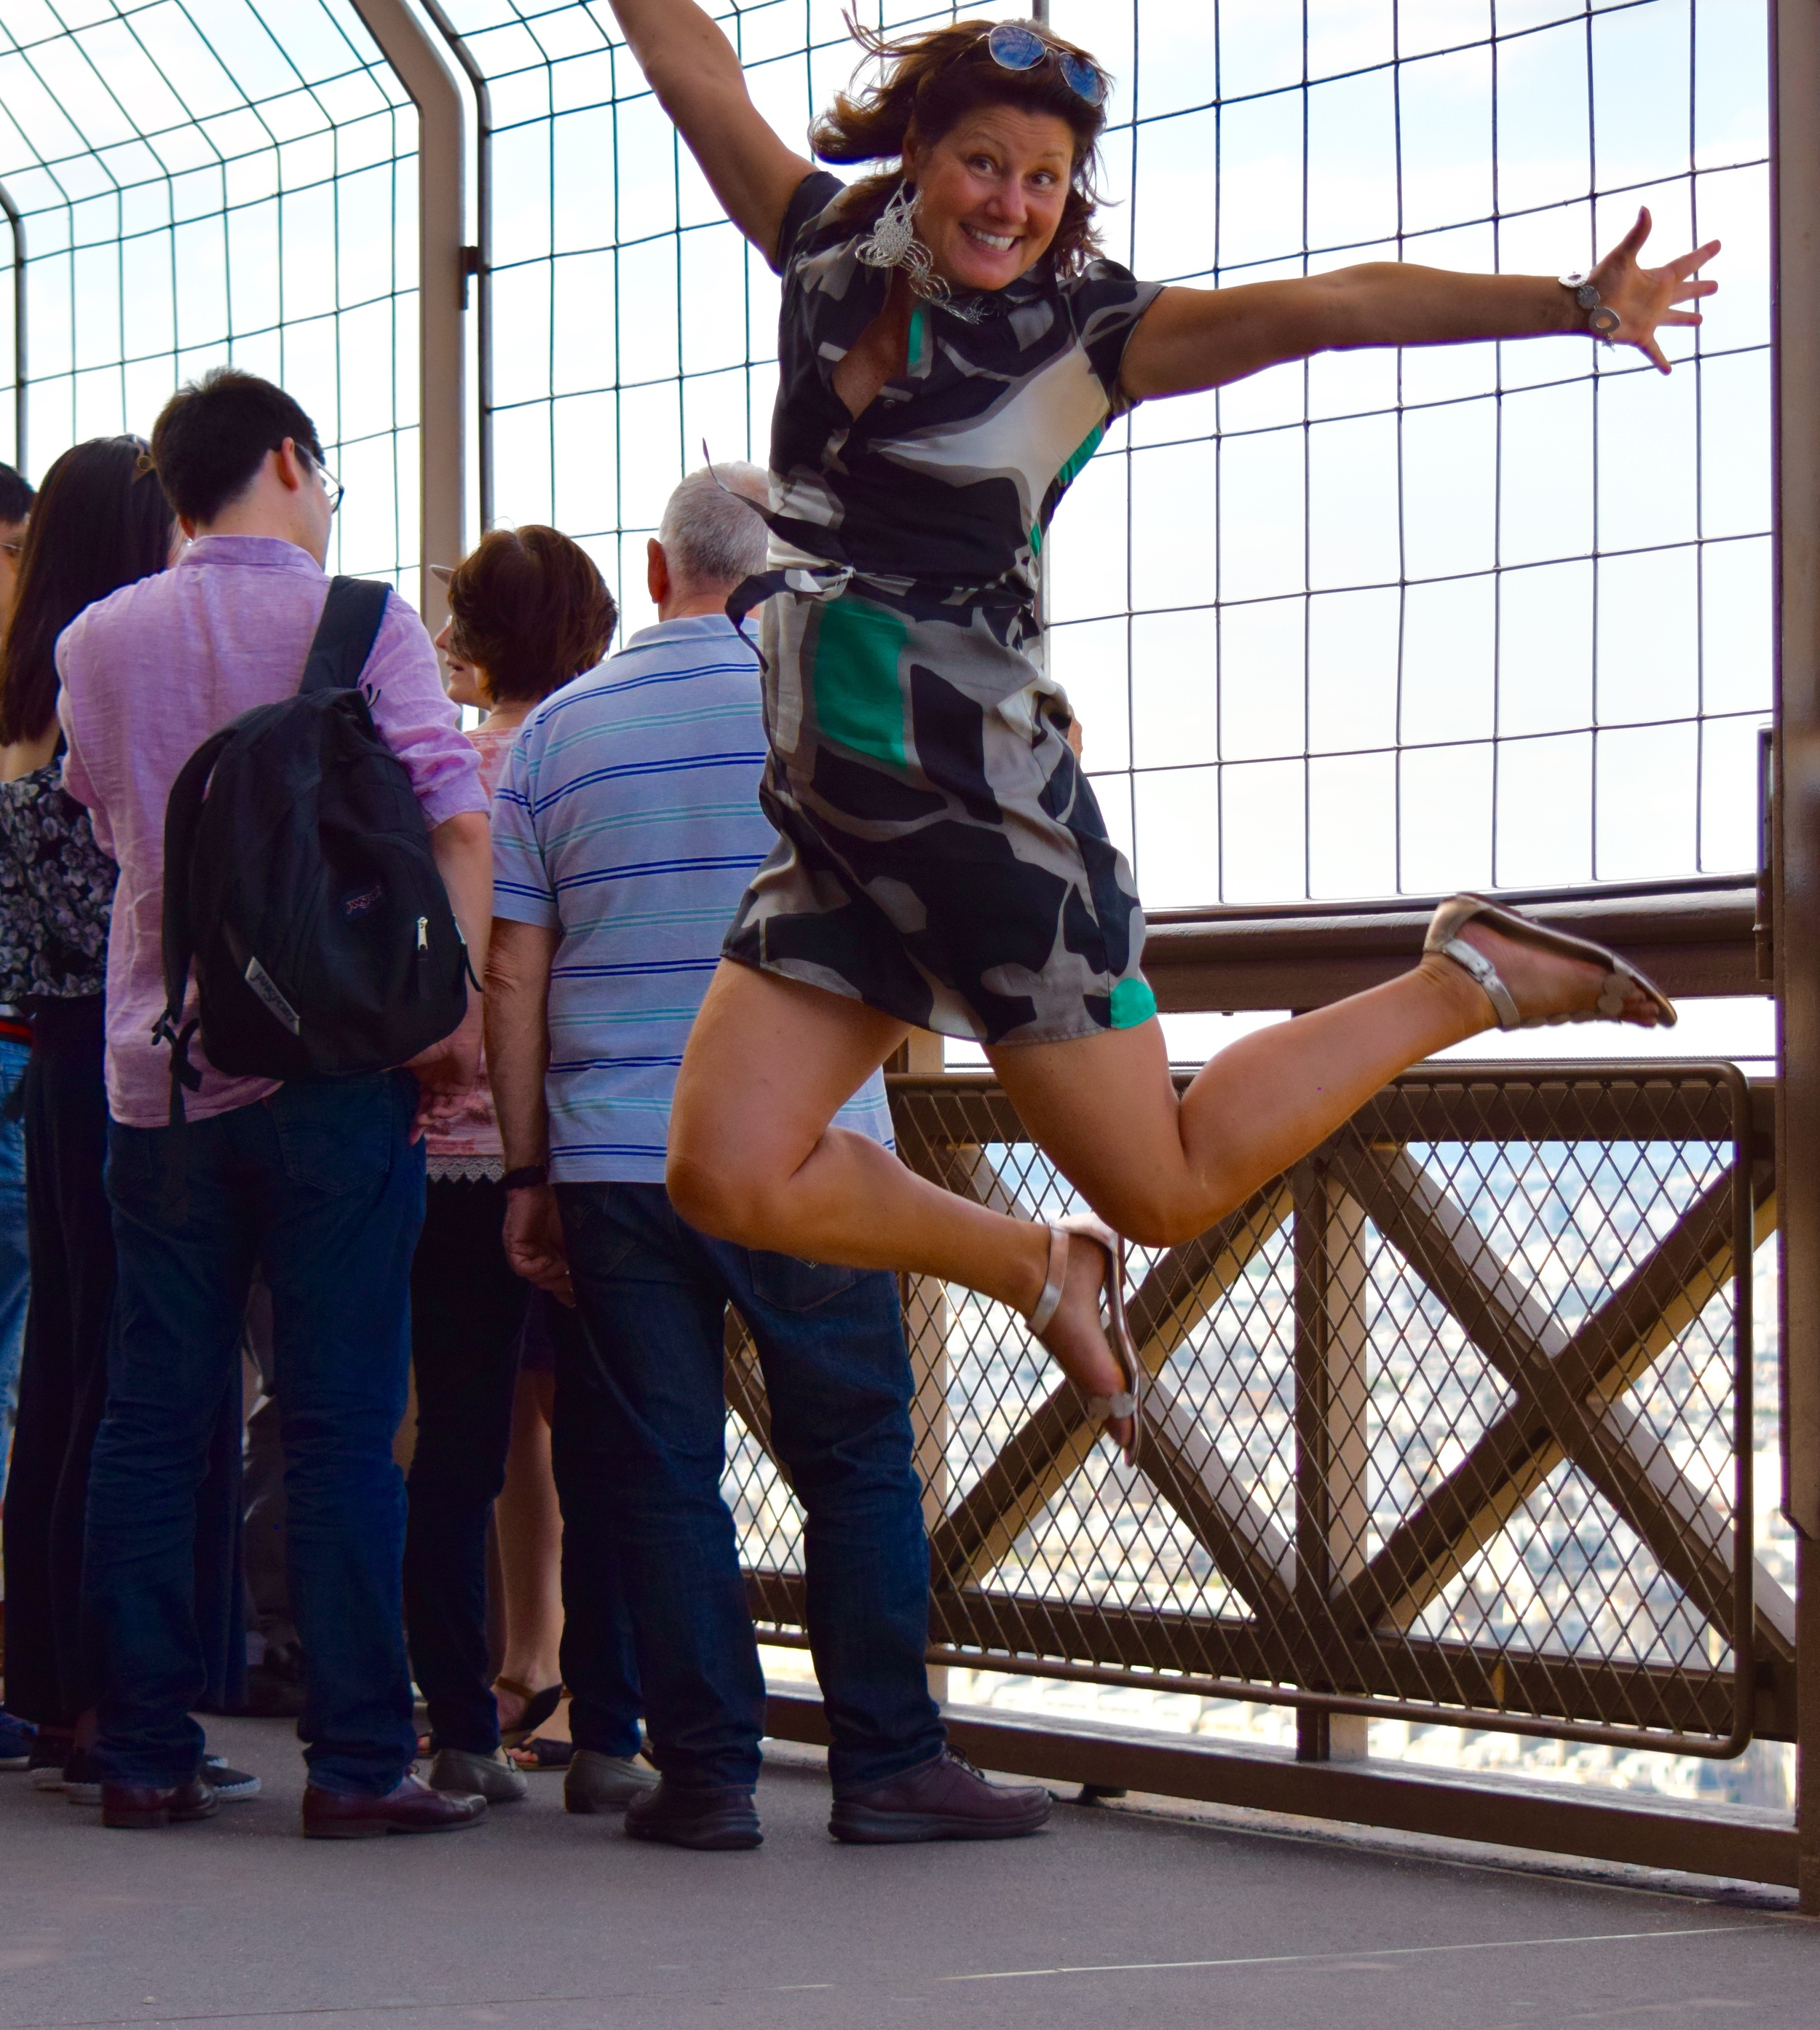 Anita Grace feeling joy at the top of the Eiffel tower. The picture was taken by her 16-year-old son.